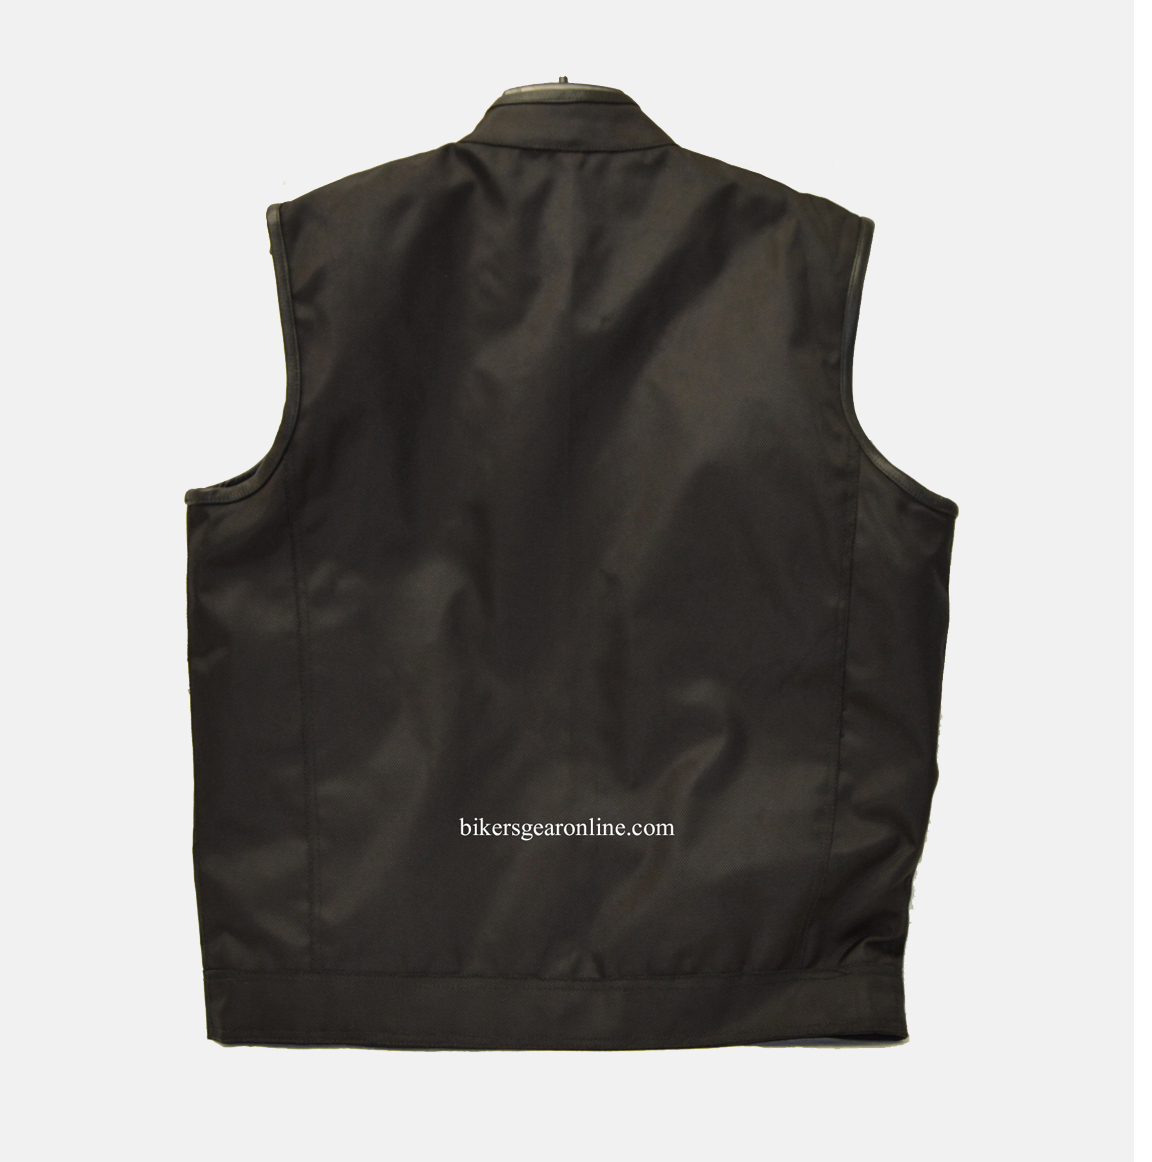 Club Textile Son Of Anarchy Vest With Gun Pockets Bikers